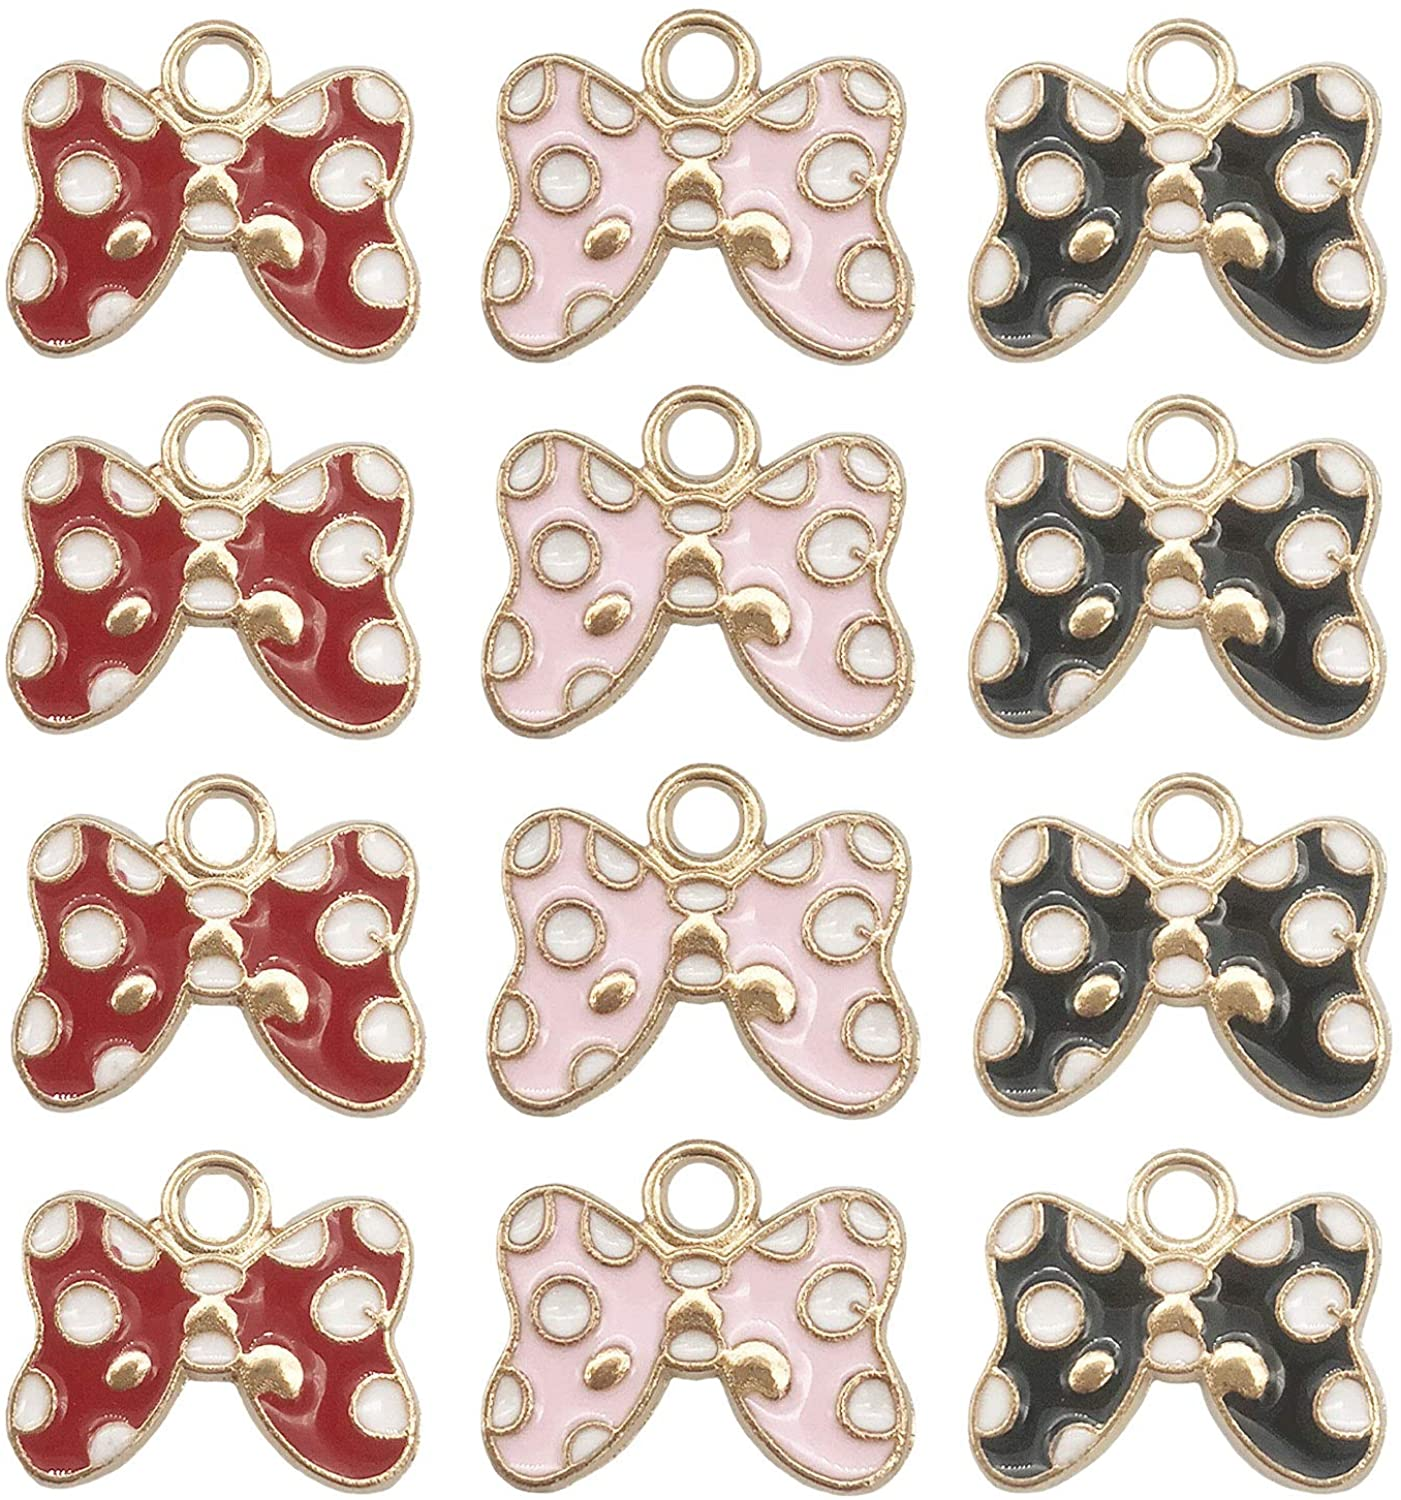 45 Pcs Bow-knot Charms Pendant for Earrings Bracelets Necklace DIY Making Jewelry Making Accessories